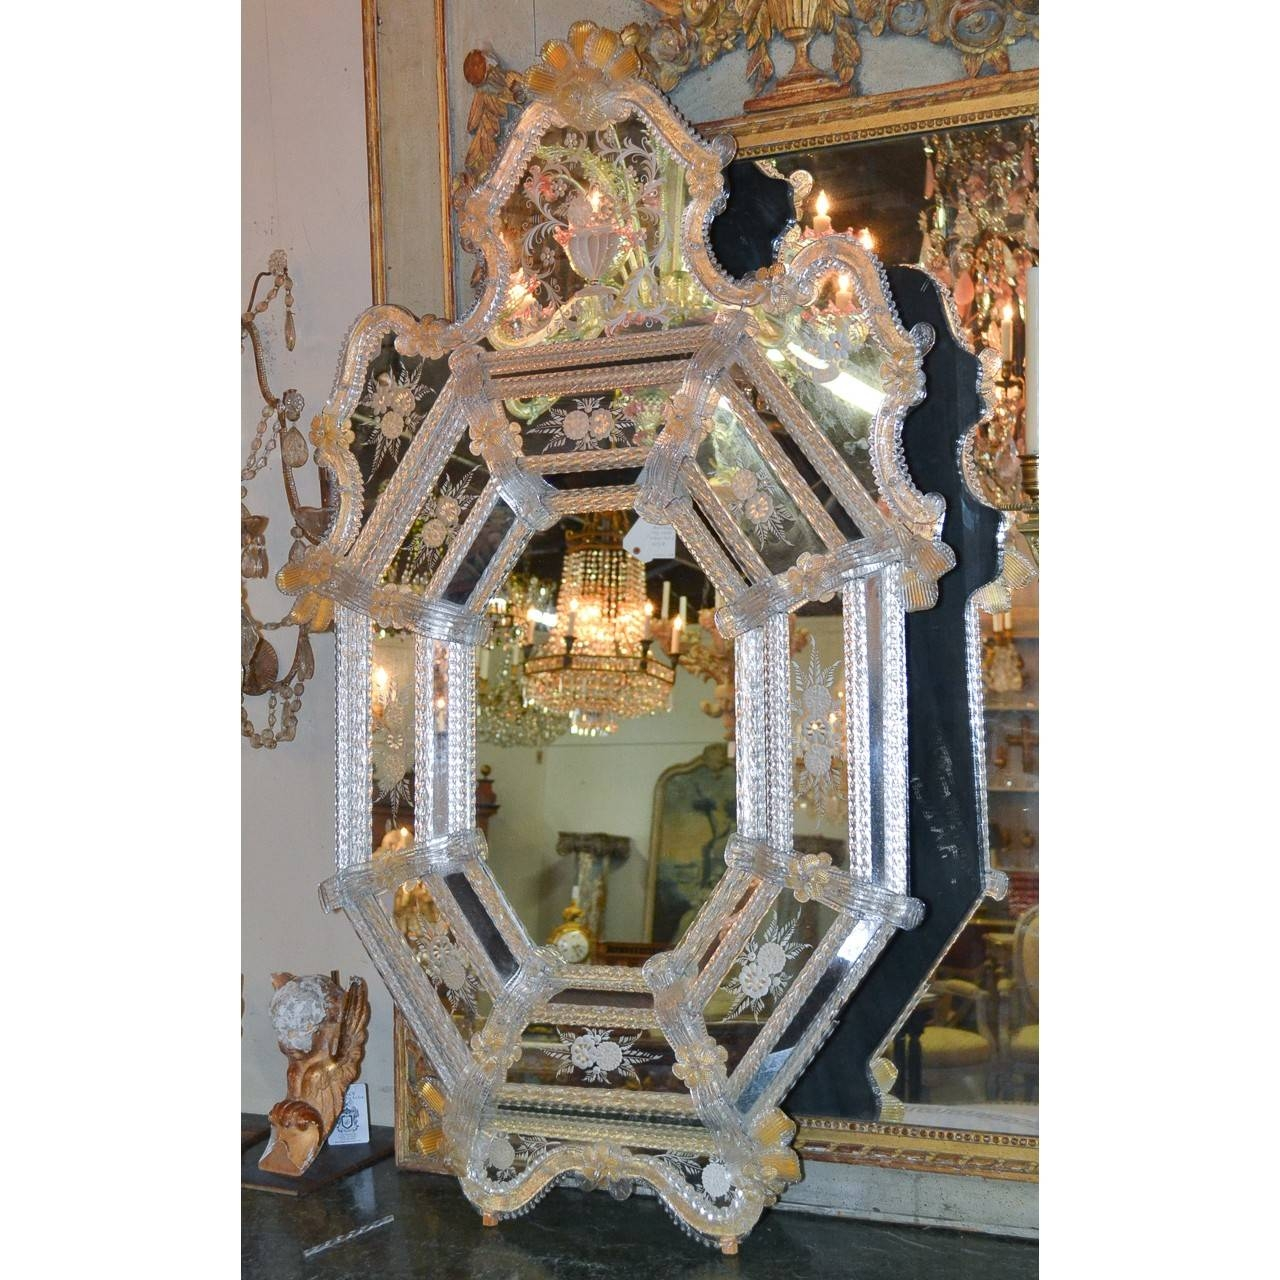 Beautiful Antique Venetian Etched Glass Mirror - Legacy Antiques within Antique Venetian Glass Mirrors (Image 13 of 25)